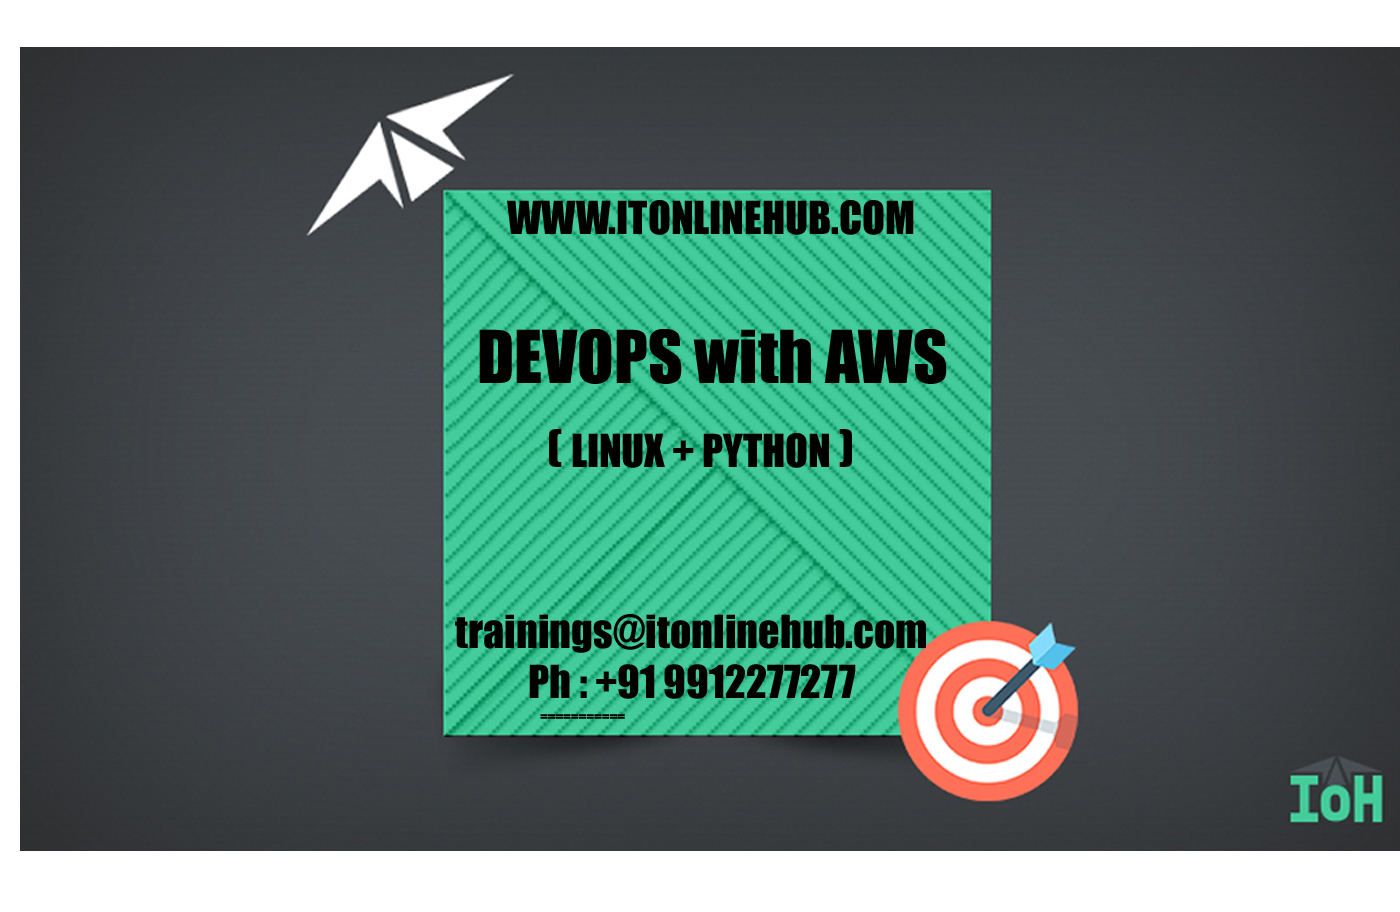 DEVOPS WITH AWS